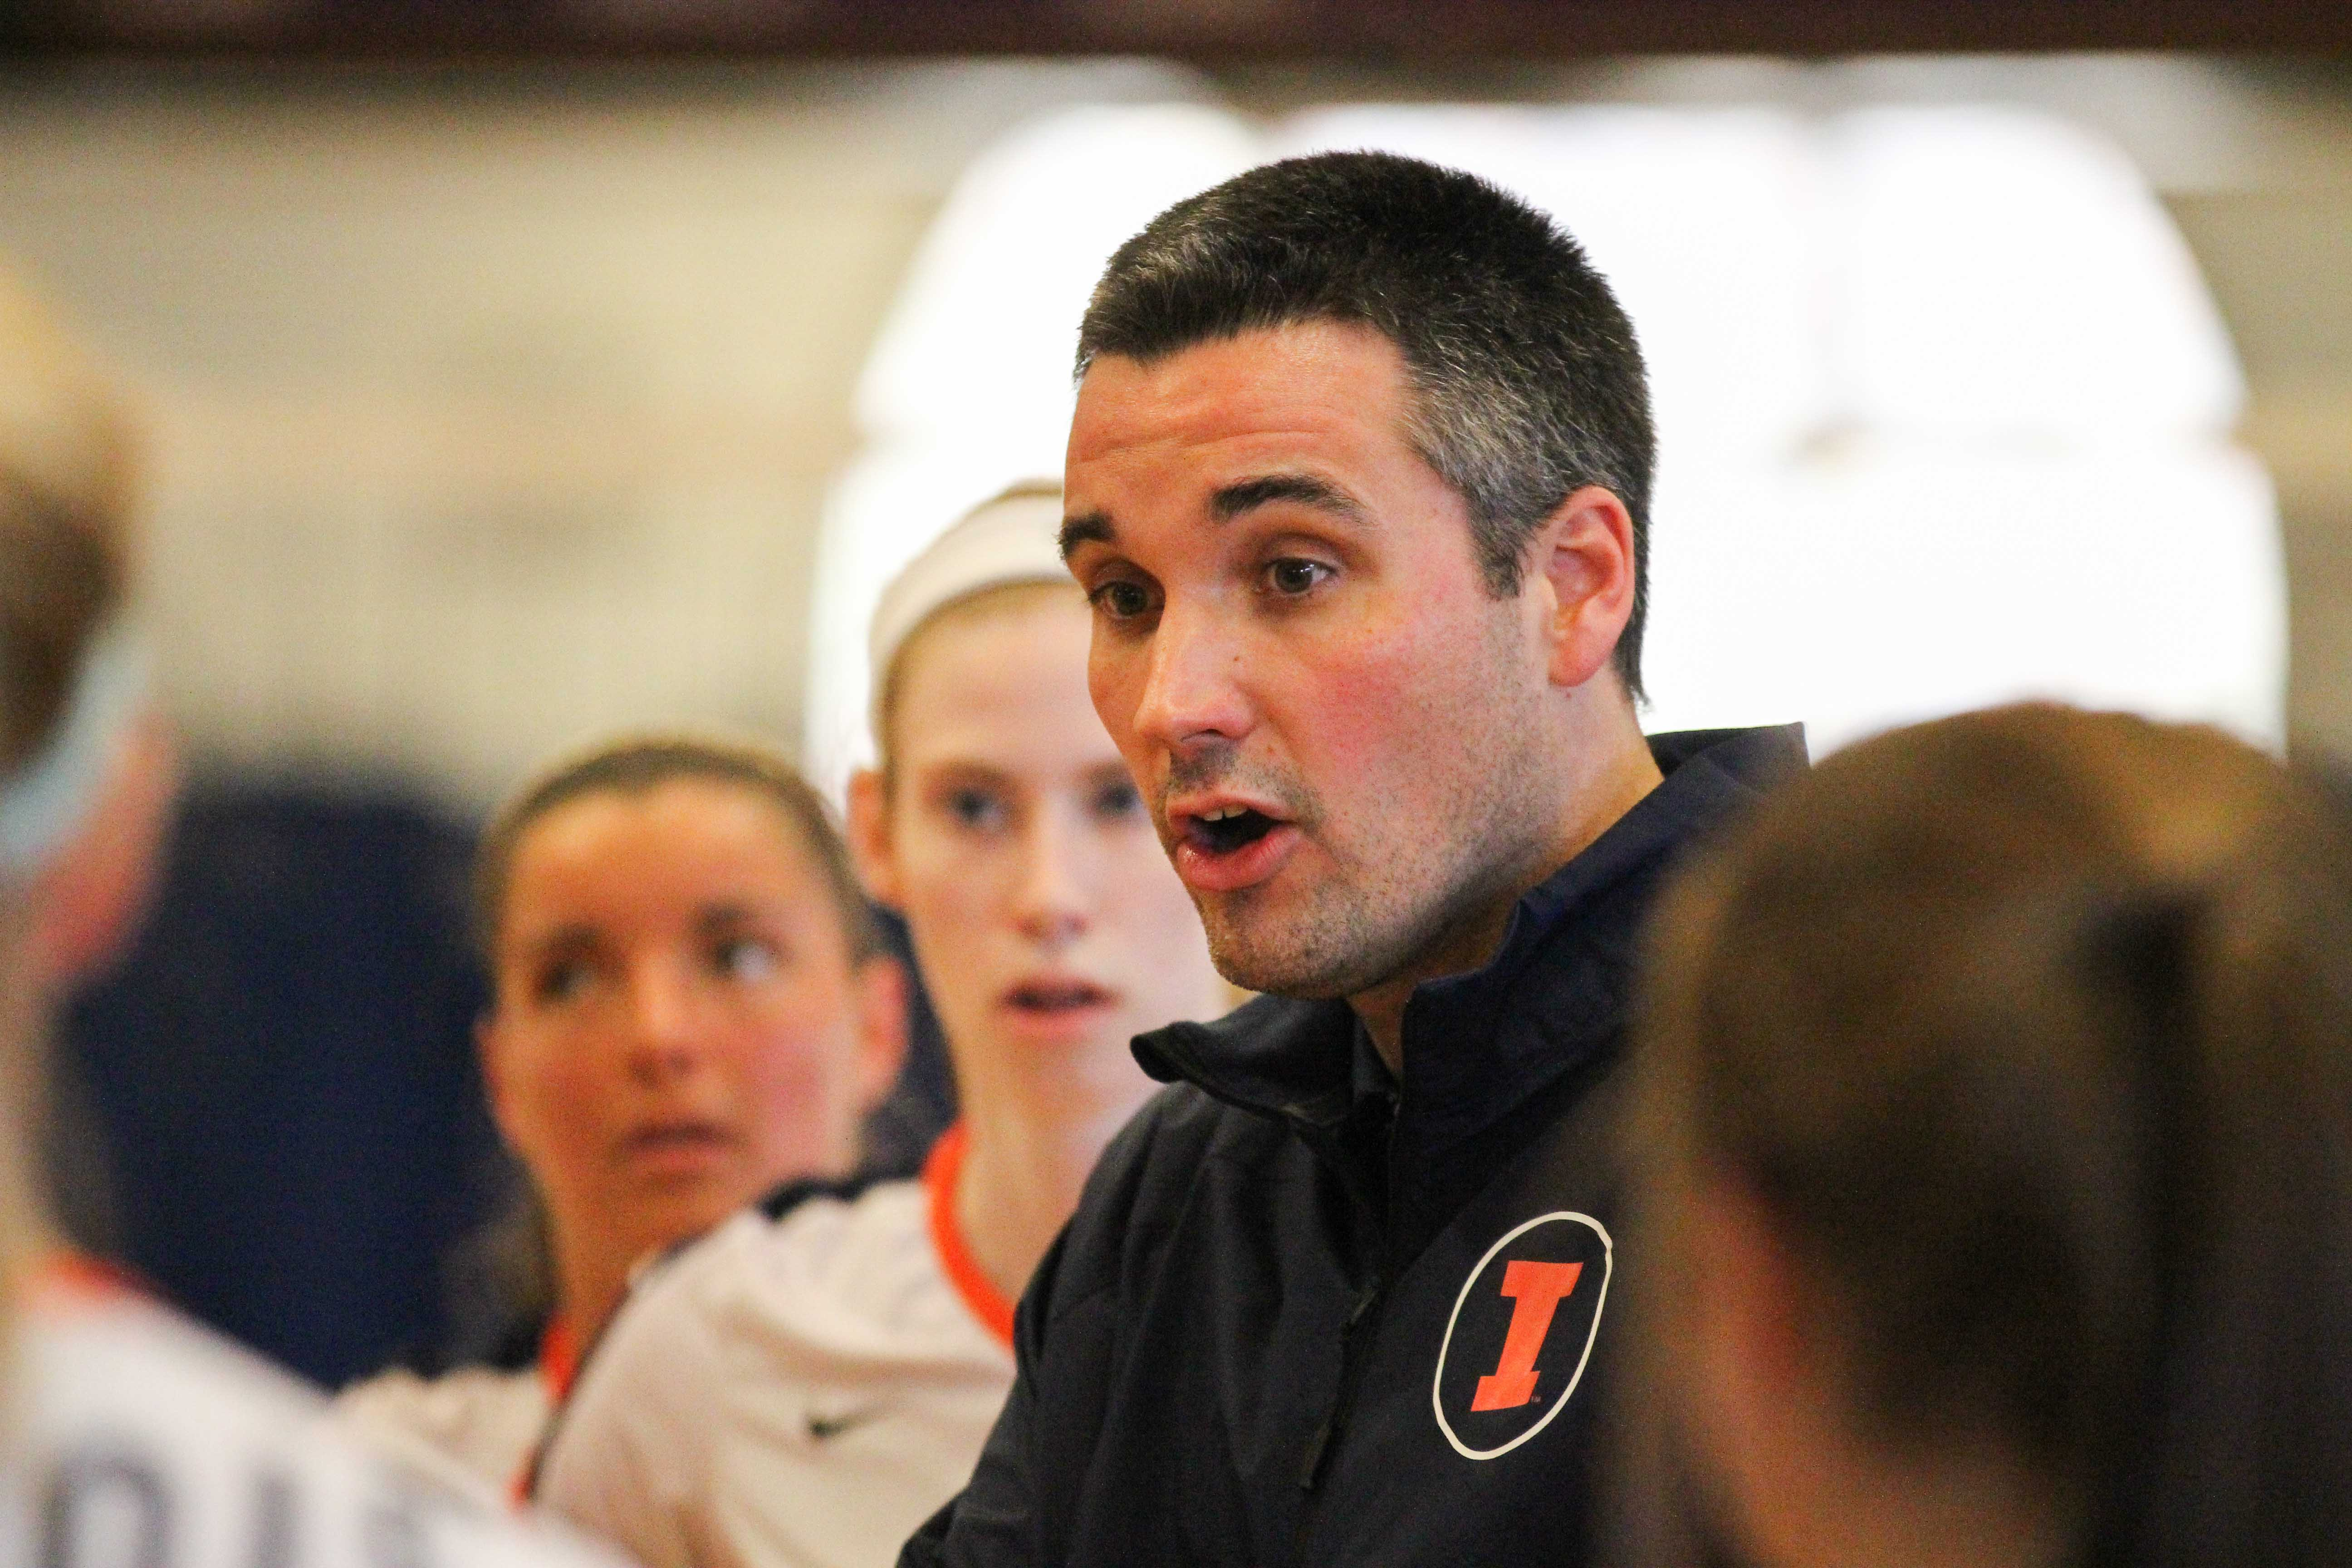 Illinois' head coach Kevin Hambly talks with his team during the Illinois vs. Kentucky volleyball game at Kenney Gym on Saturday, April 19, 2014.  The Illini won 3-1.